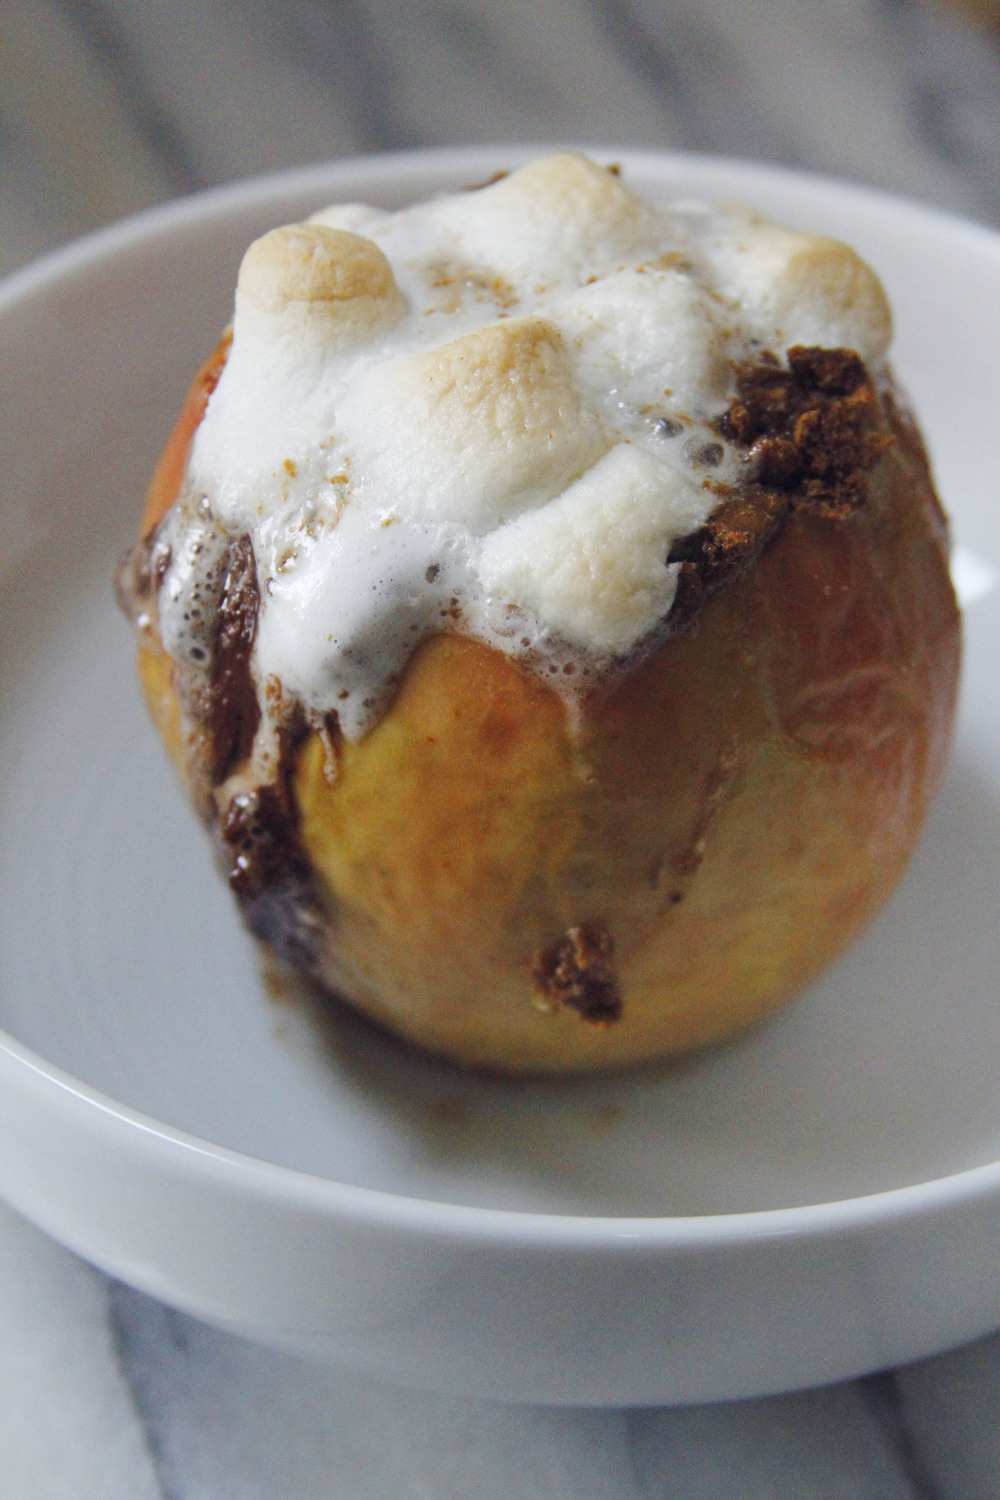 S'mores baked apples // print (em) shop